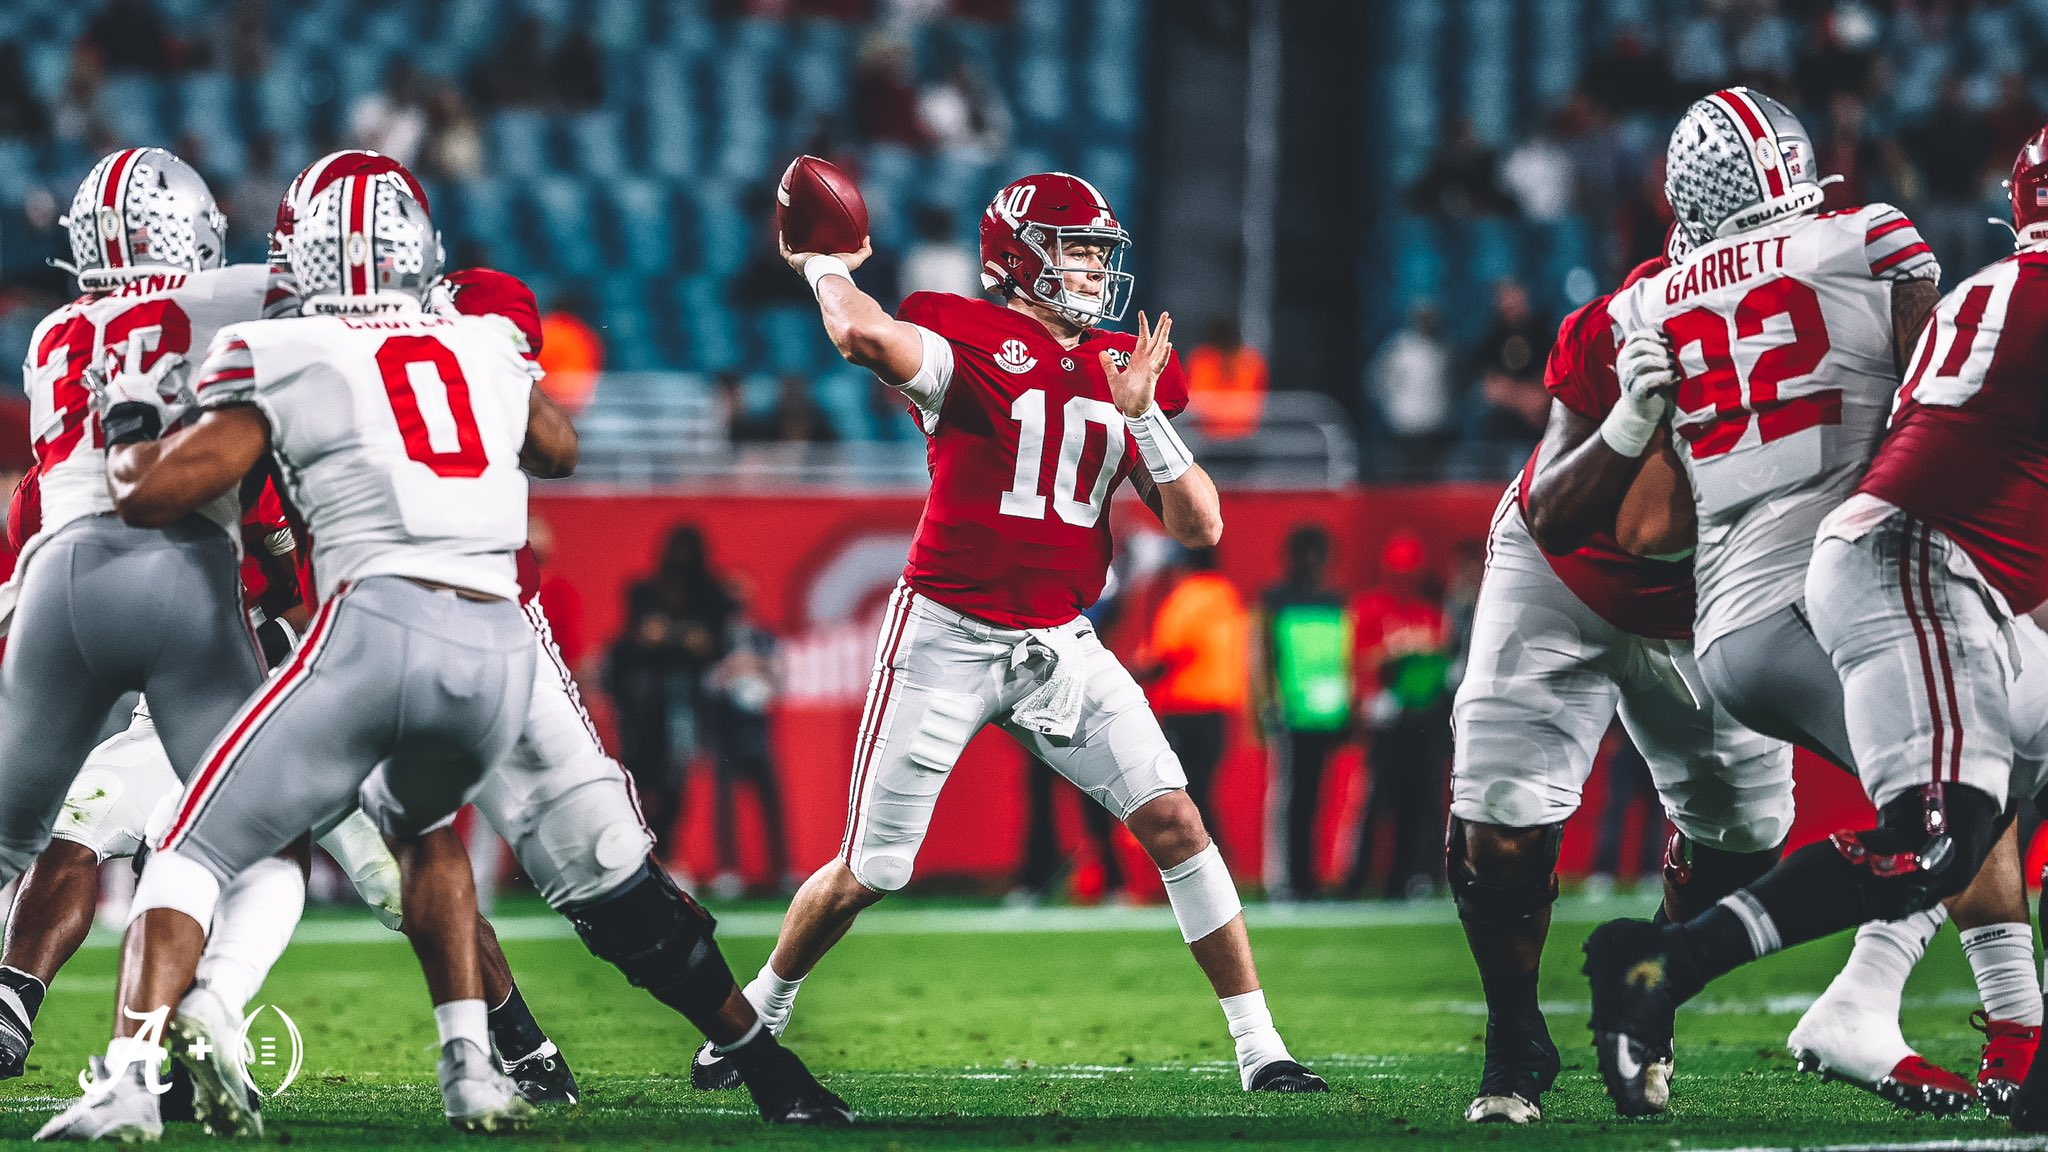 Mac Jones quarterback Alabama Crimson Tide NFL Draft 2021